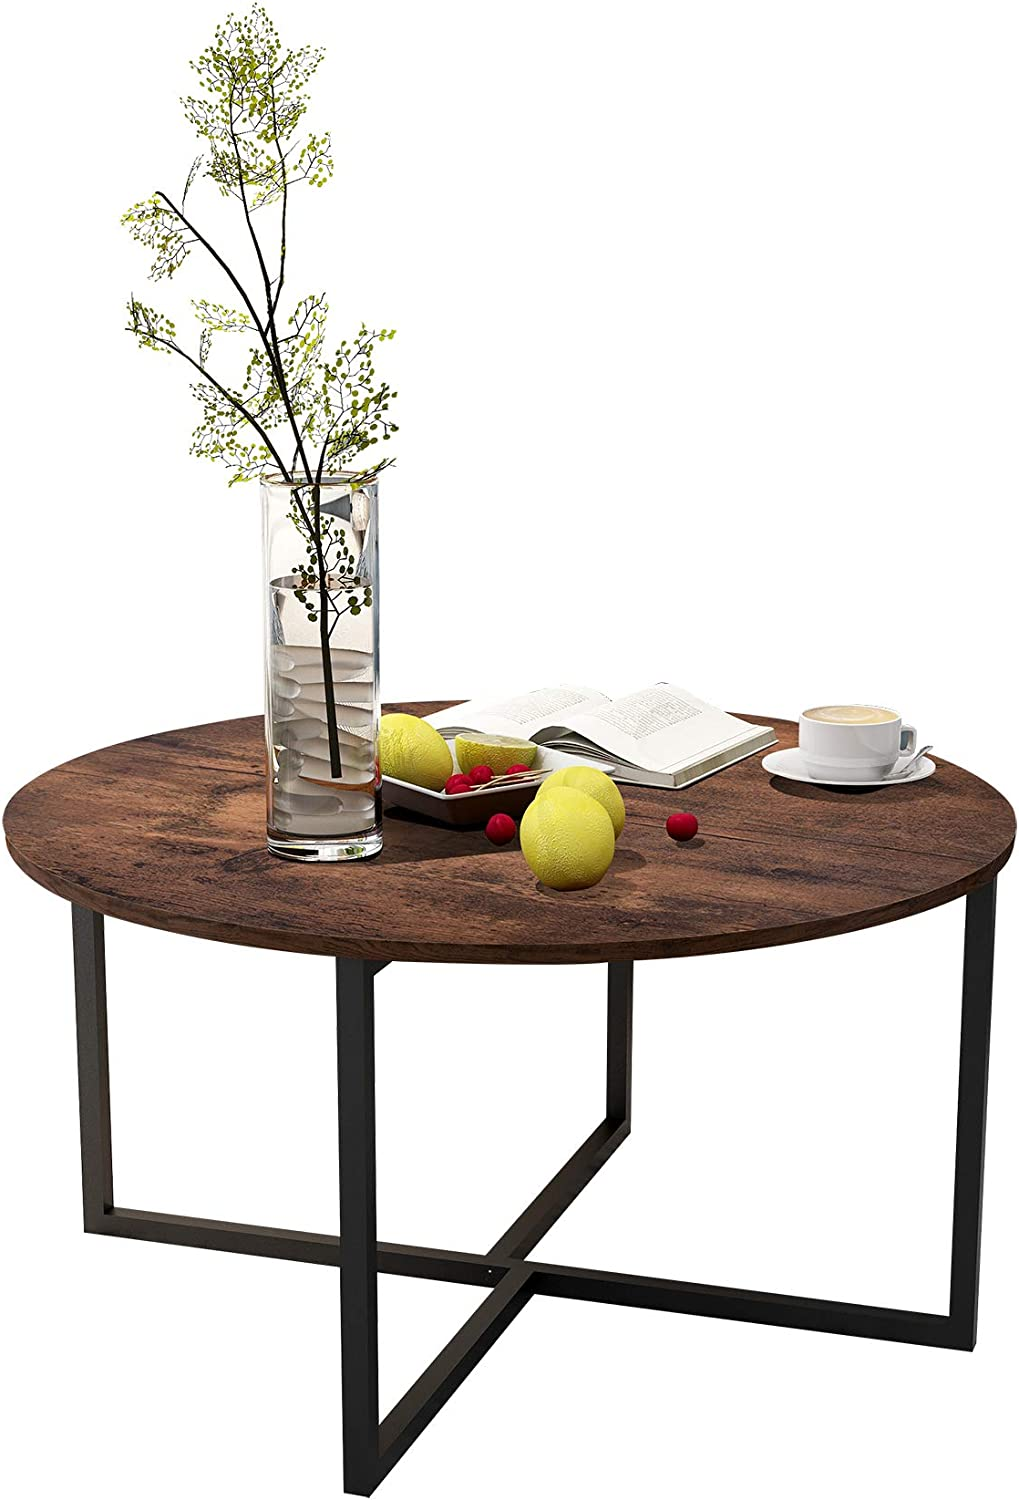 Small Table for Kitchen Dining Room Creative Round Desk with Black Metal Legs Modern Coffee Tables Balcony Tea Table Study Desk Brown